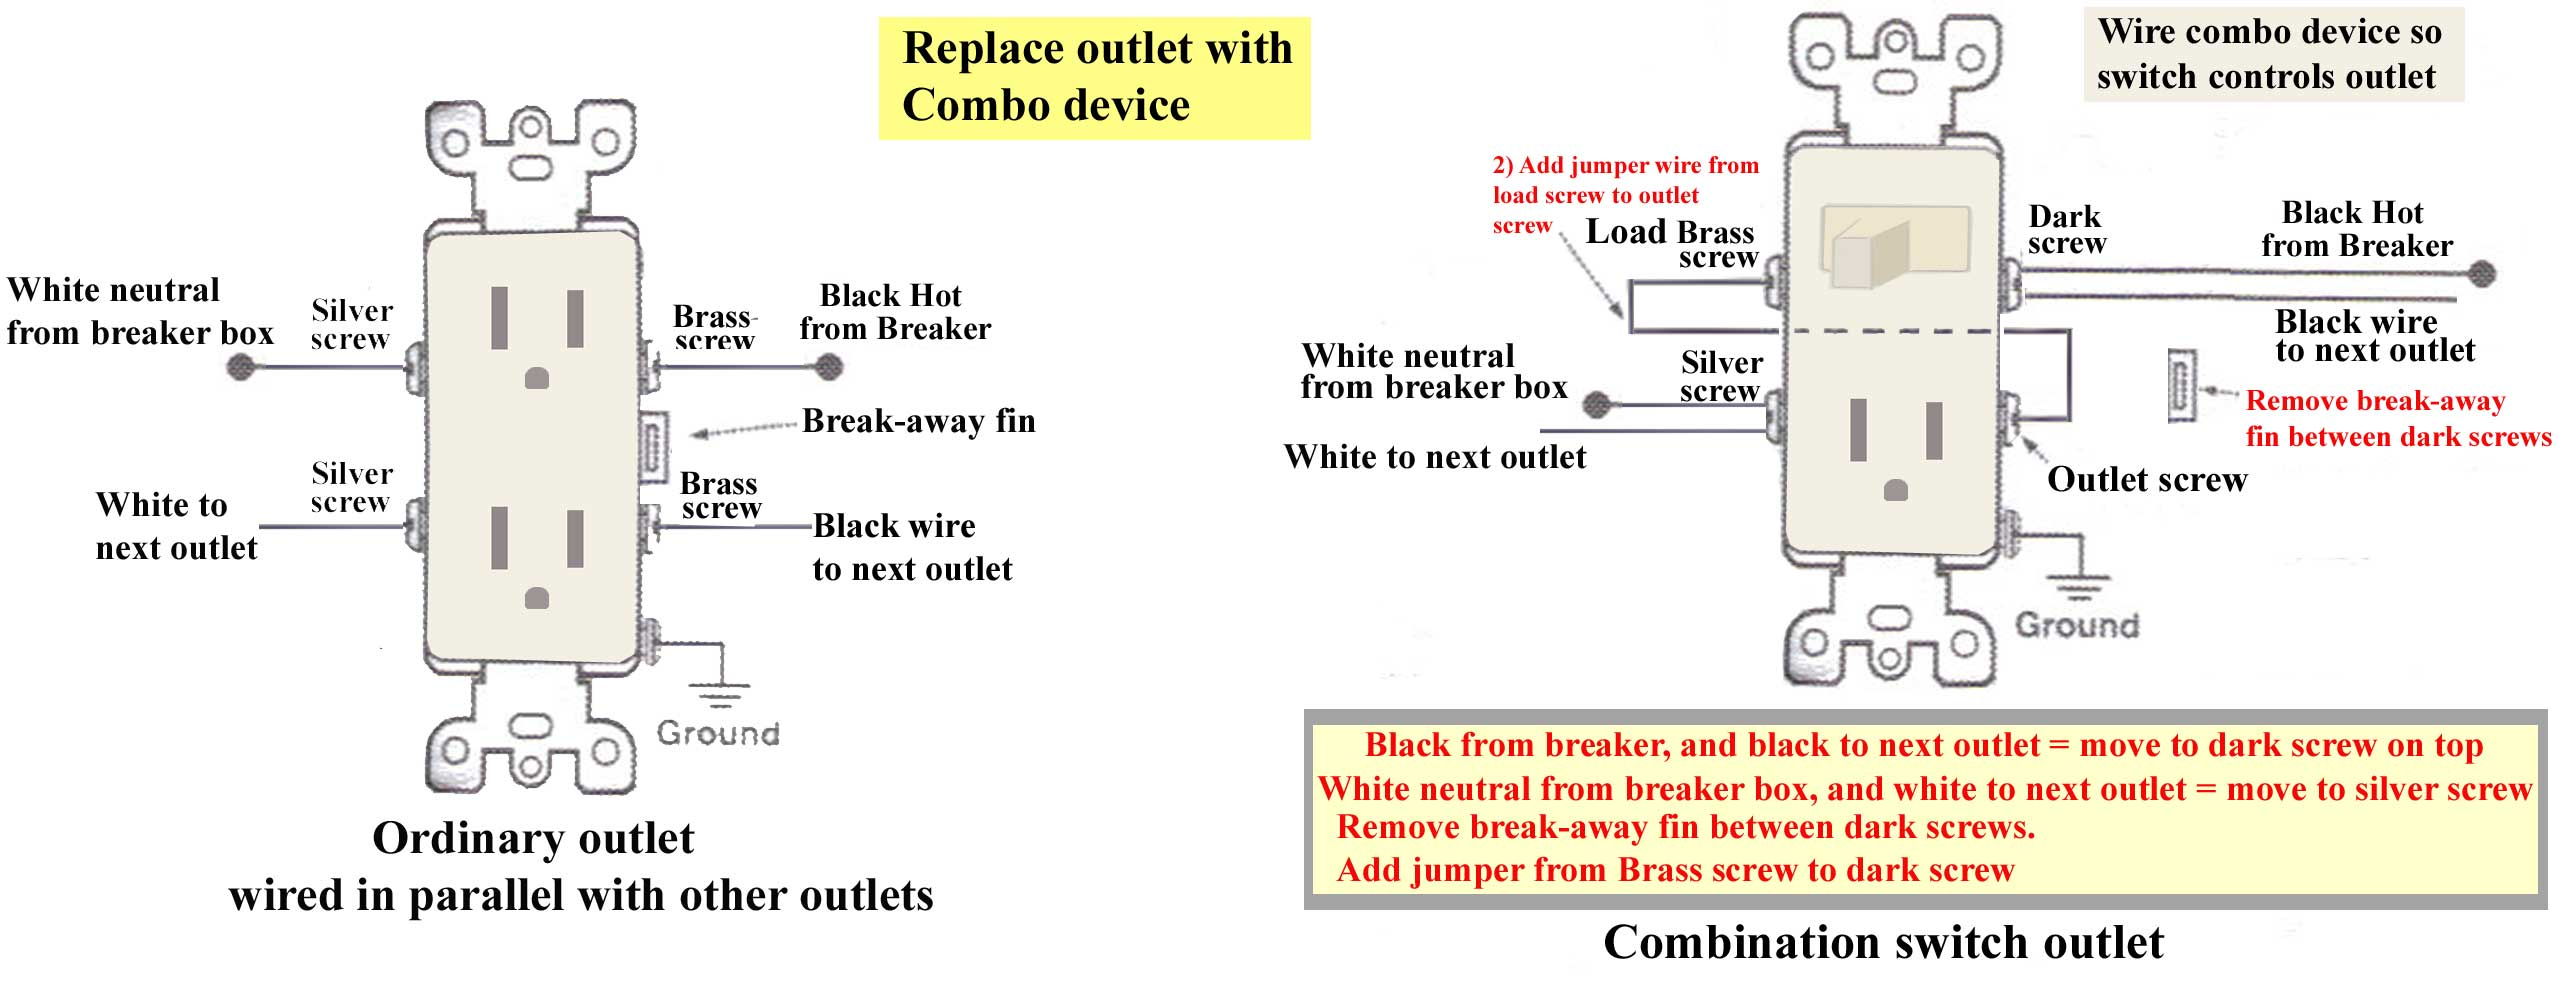 Combo switch replaces outlet 900 how to replace outlet with combo switch switch outlet combo wiring diagram at crackthecode.co